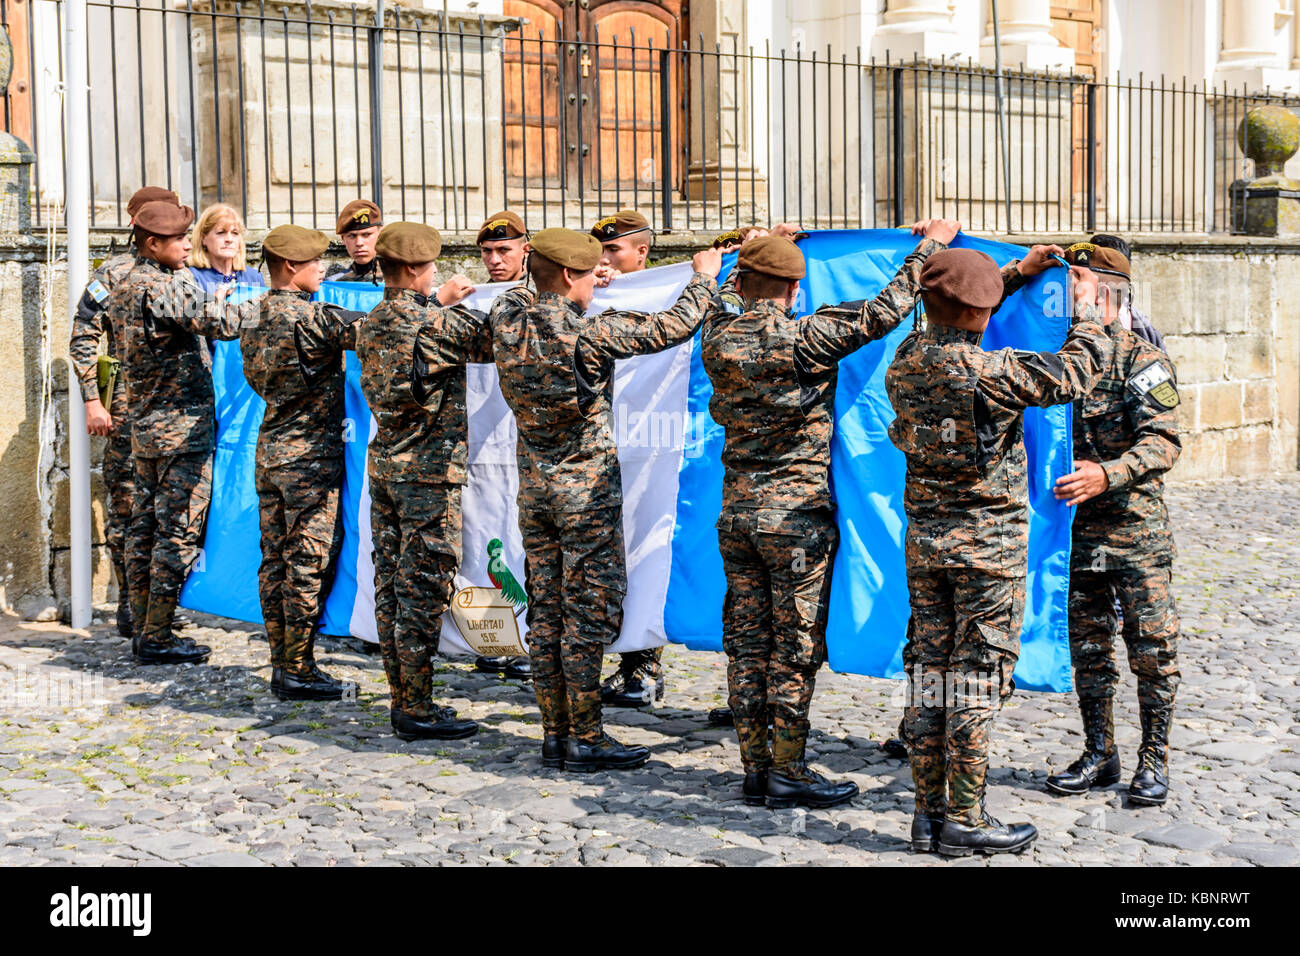 Antigua, Guatemala - September 15, 2017: Soldiers fold Guatemalan flag with Mayor of Antigua after lowering it on - Stock Image